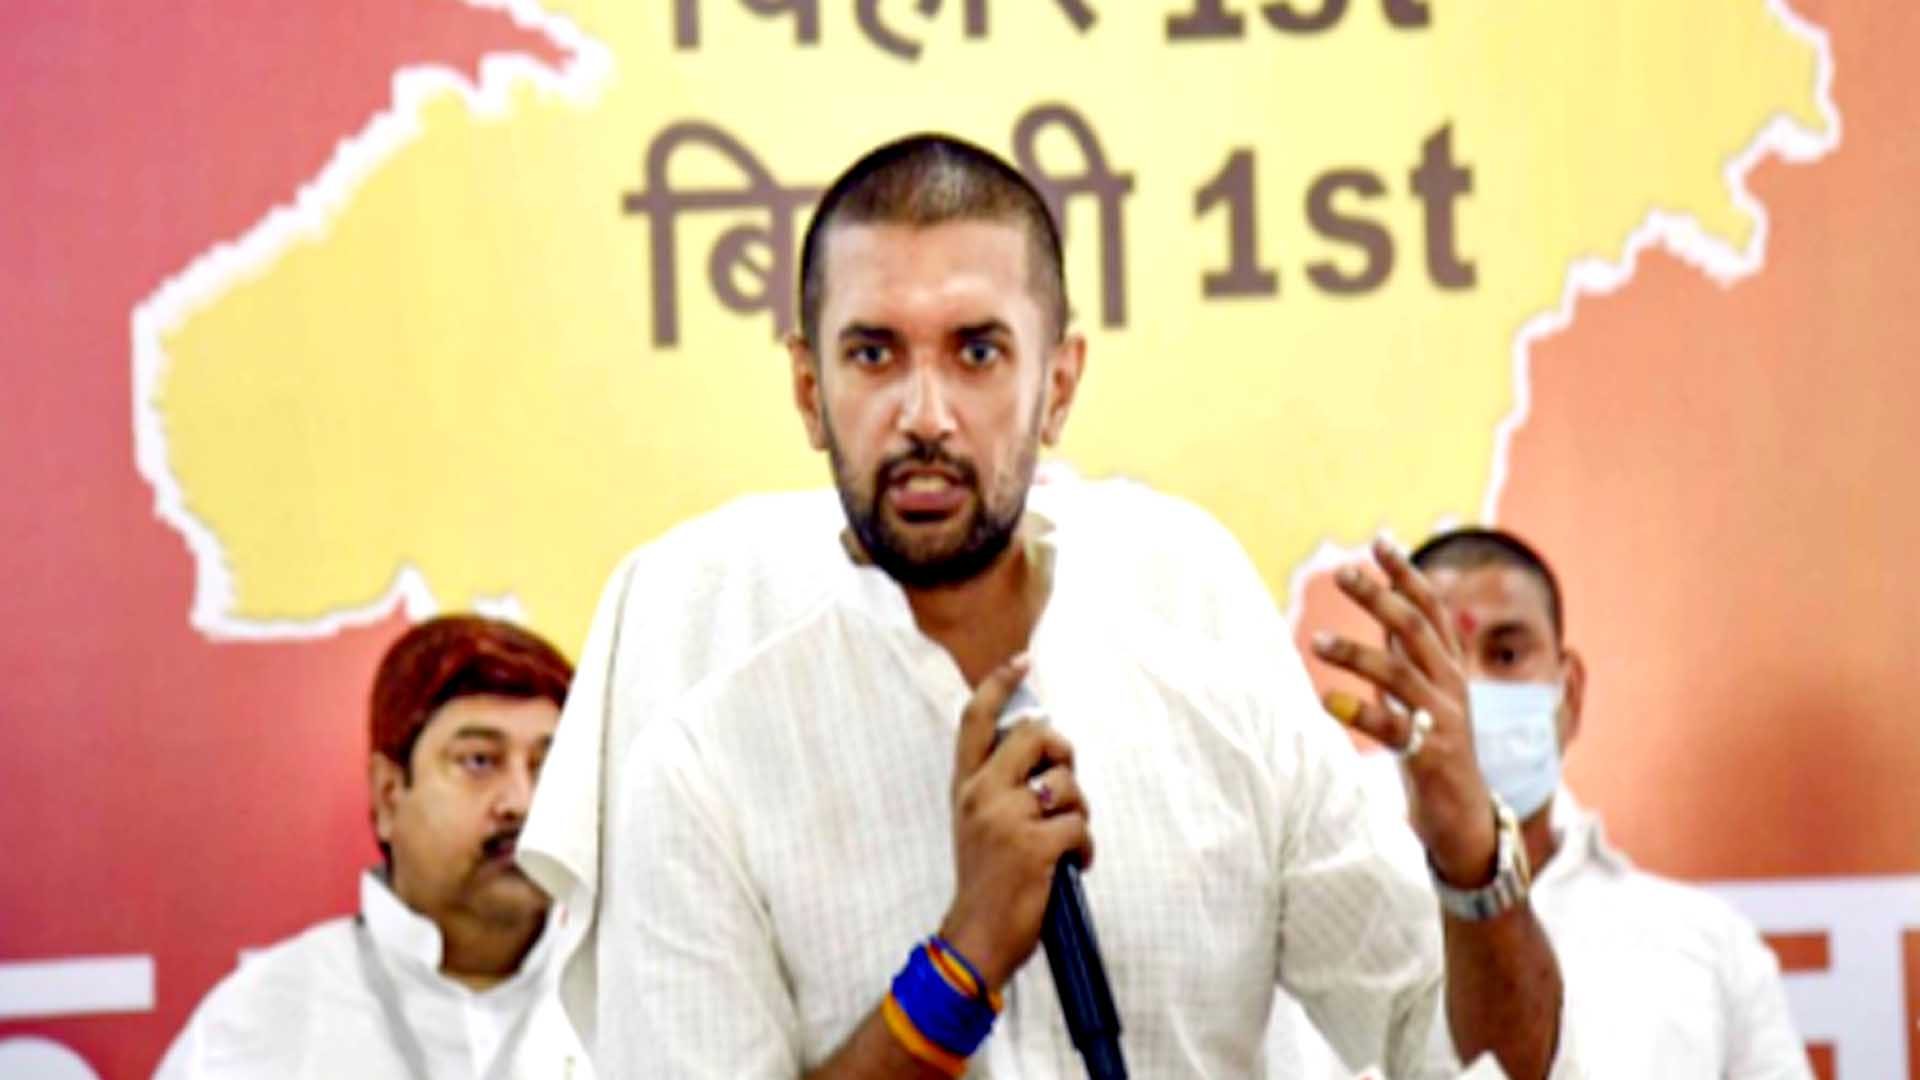 Nitish Kumar is the Most Corrupt Chief Minister Ever: Chirag Paswan